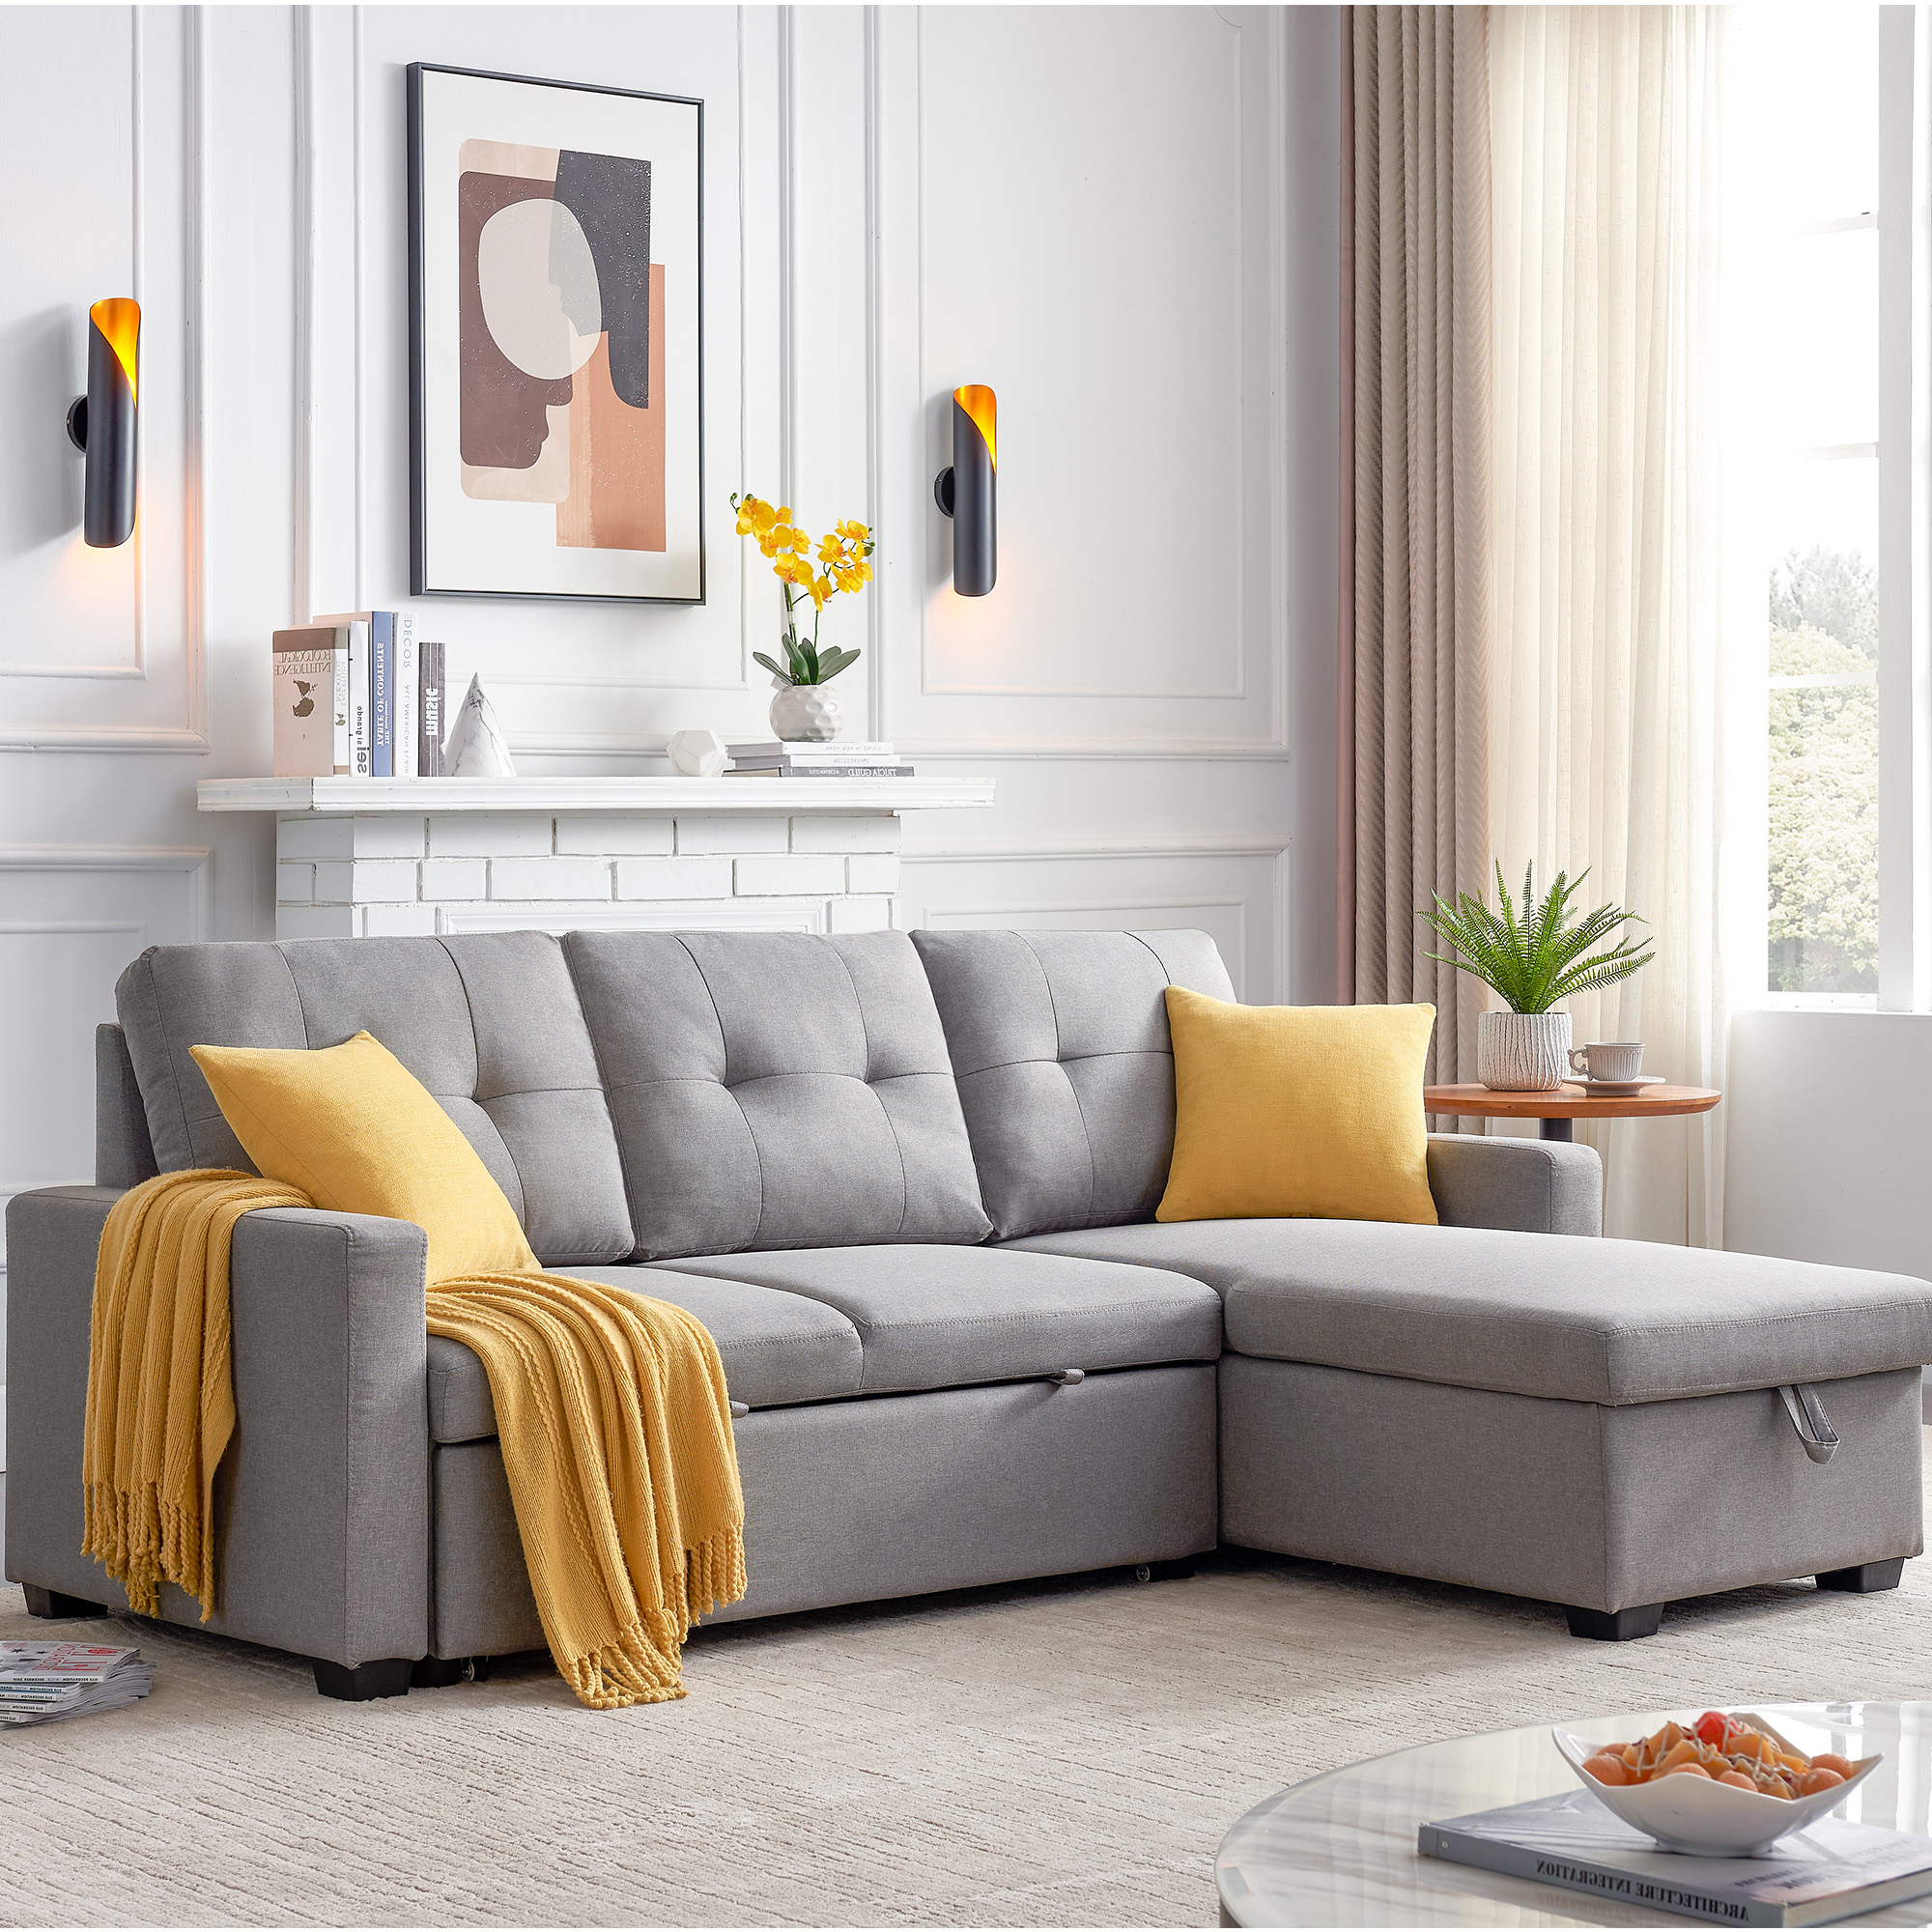 """Tufted 82"""" X 60"""" X 35"""" Modern Sofa Bed With Pull Out Throughout Well Liked Easton Small Space Sectional Futon Sofas (View 1 of 20)"""